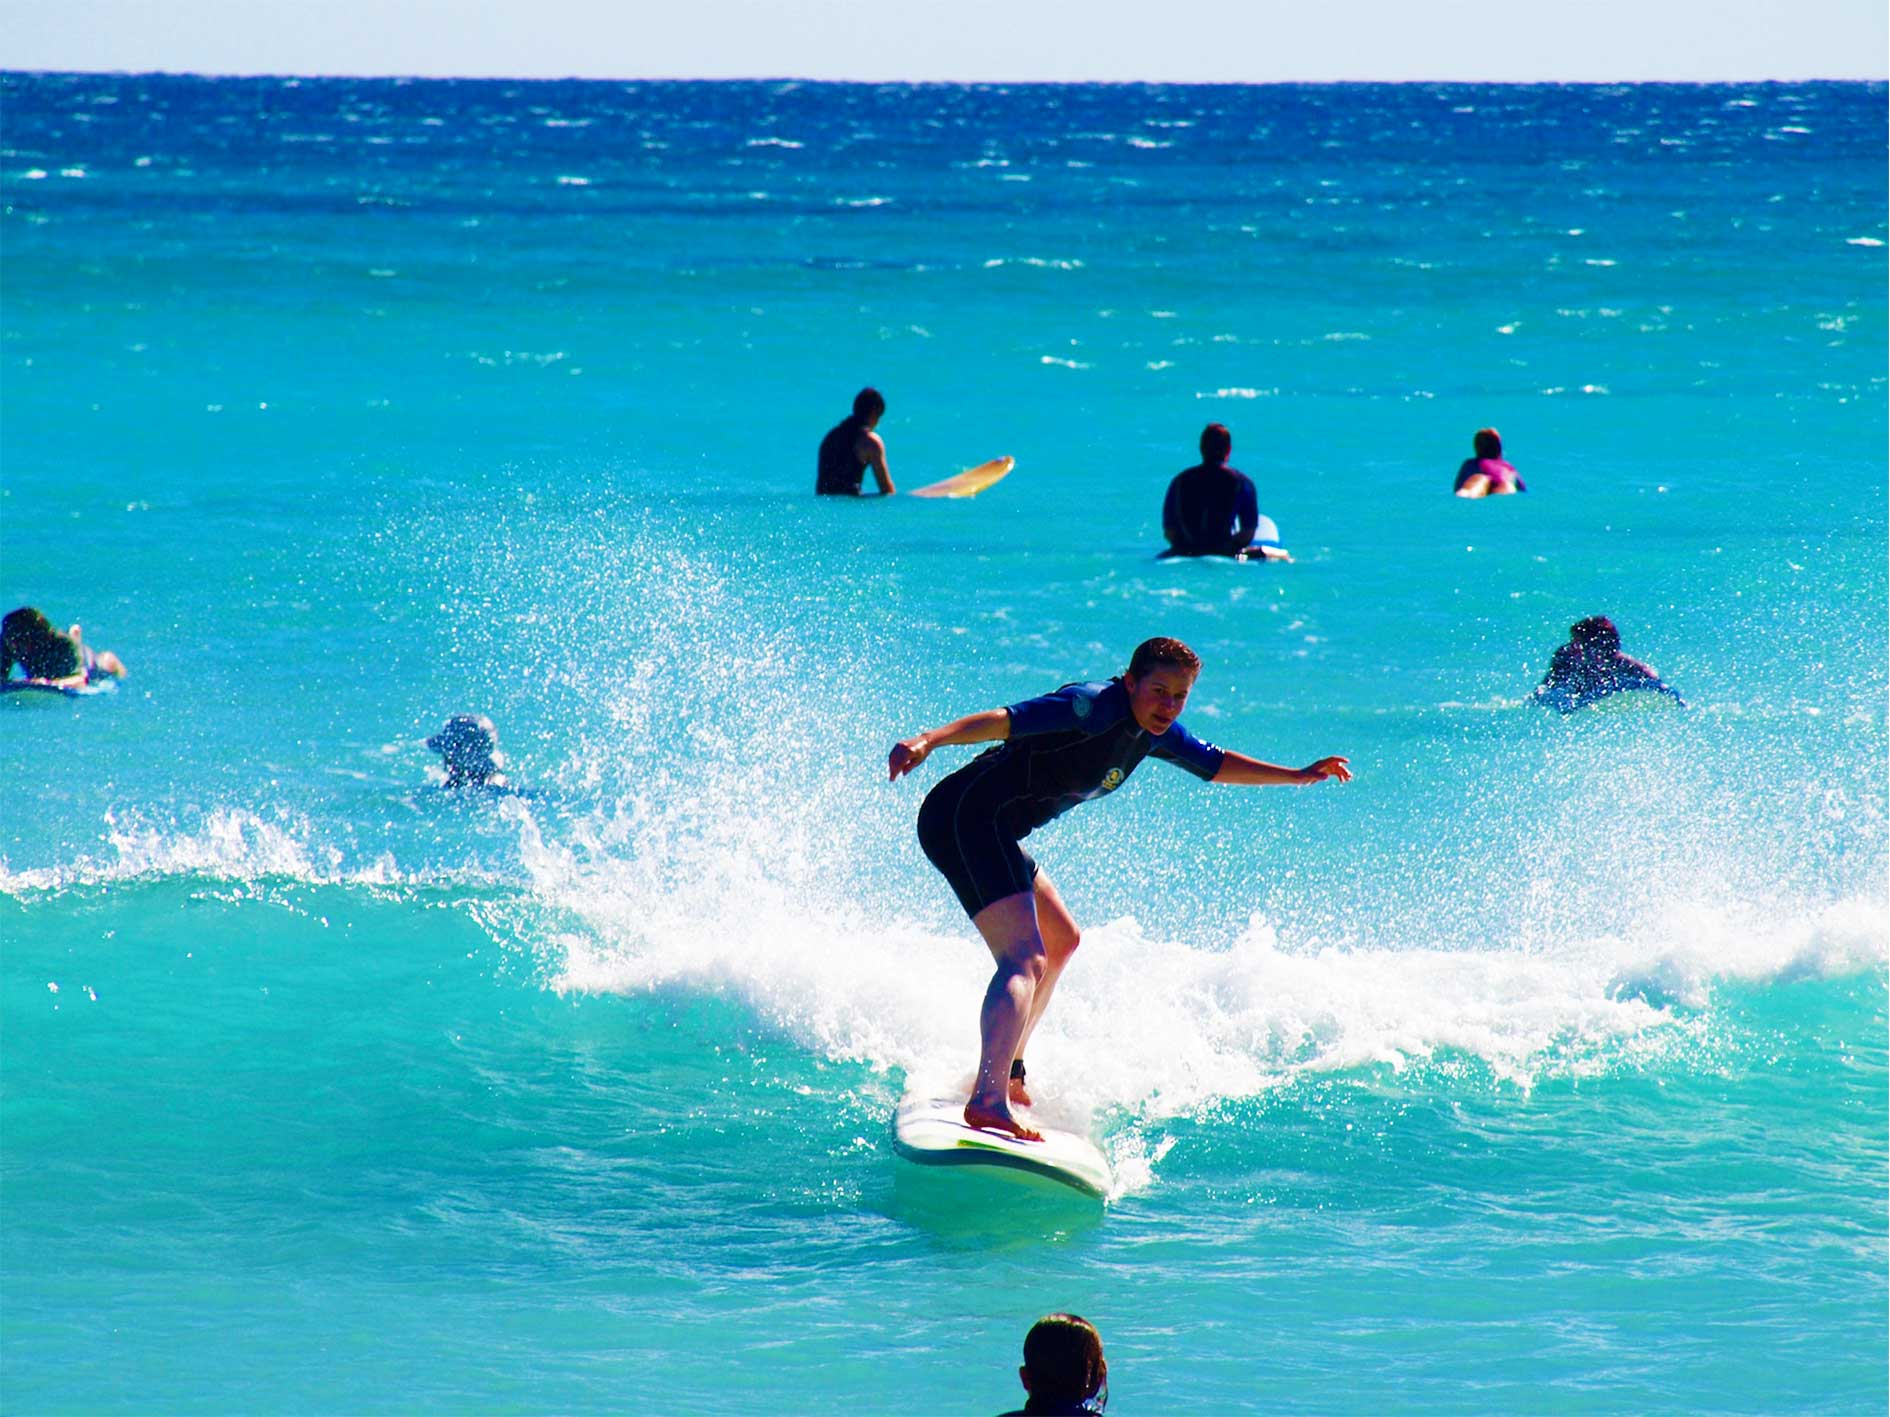 Beginner surfer rides a small wave during a learn to surf lesson in Exmouth, Ningaloo Reef, Western Australia